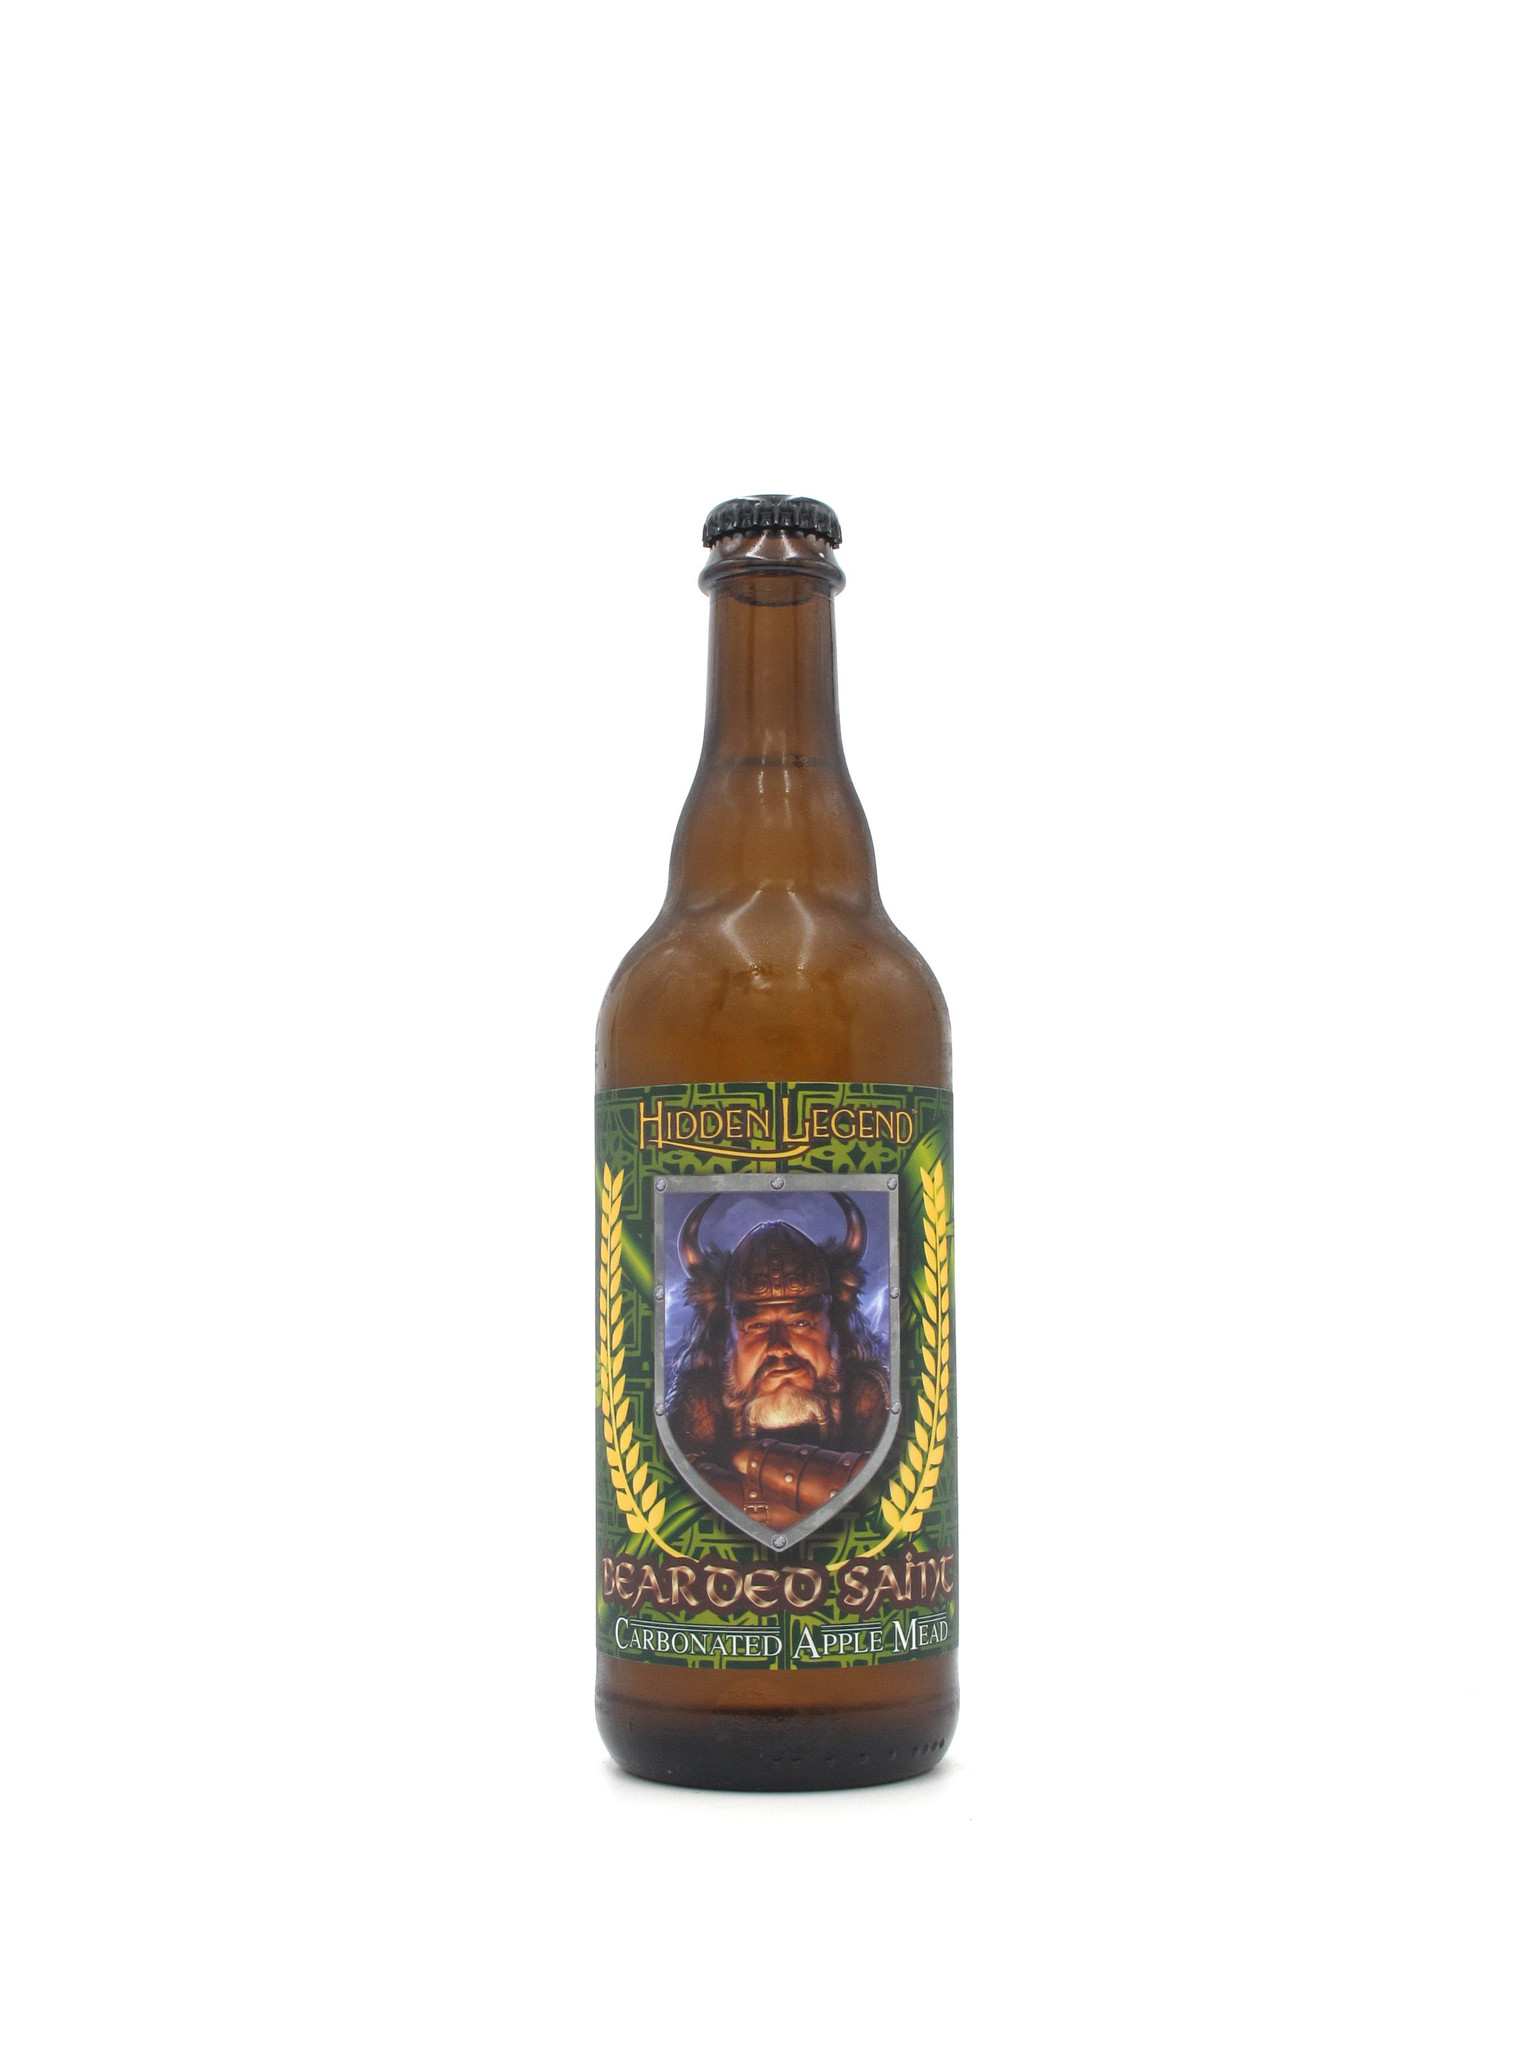 Hidden Legend Meads Hidden Legend 'Bearded Saint' Carbonated Mead 500ml